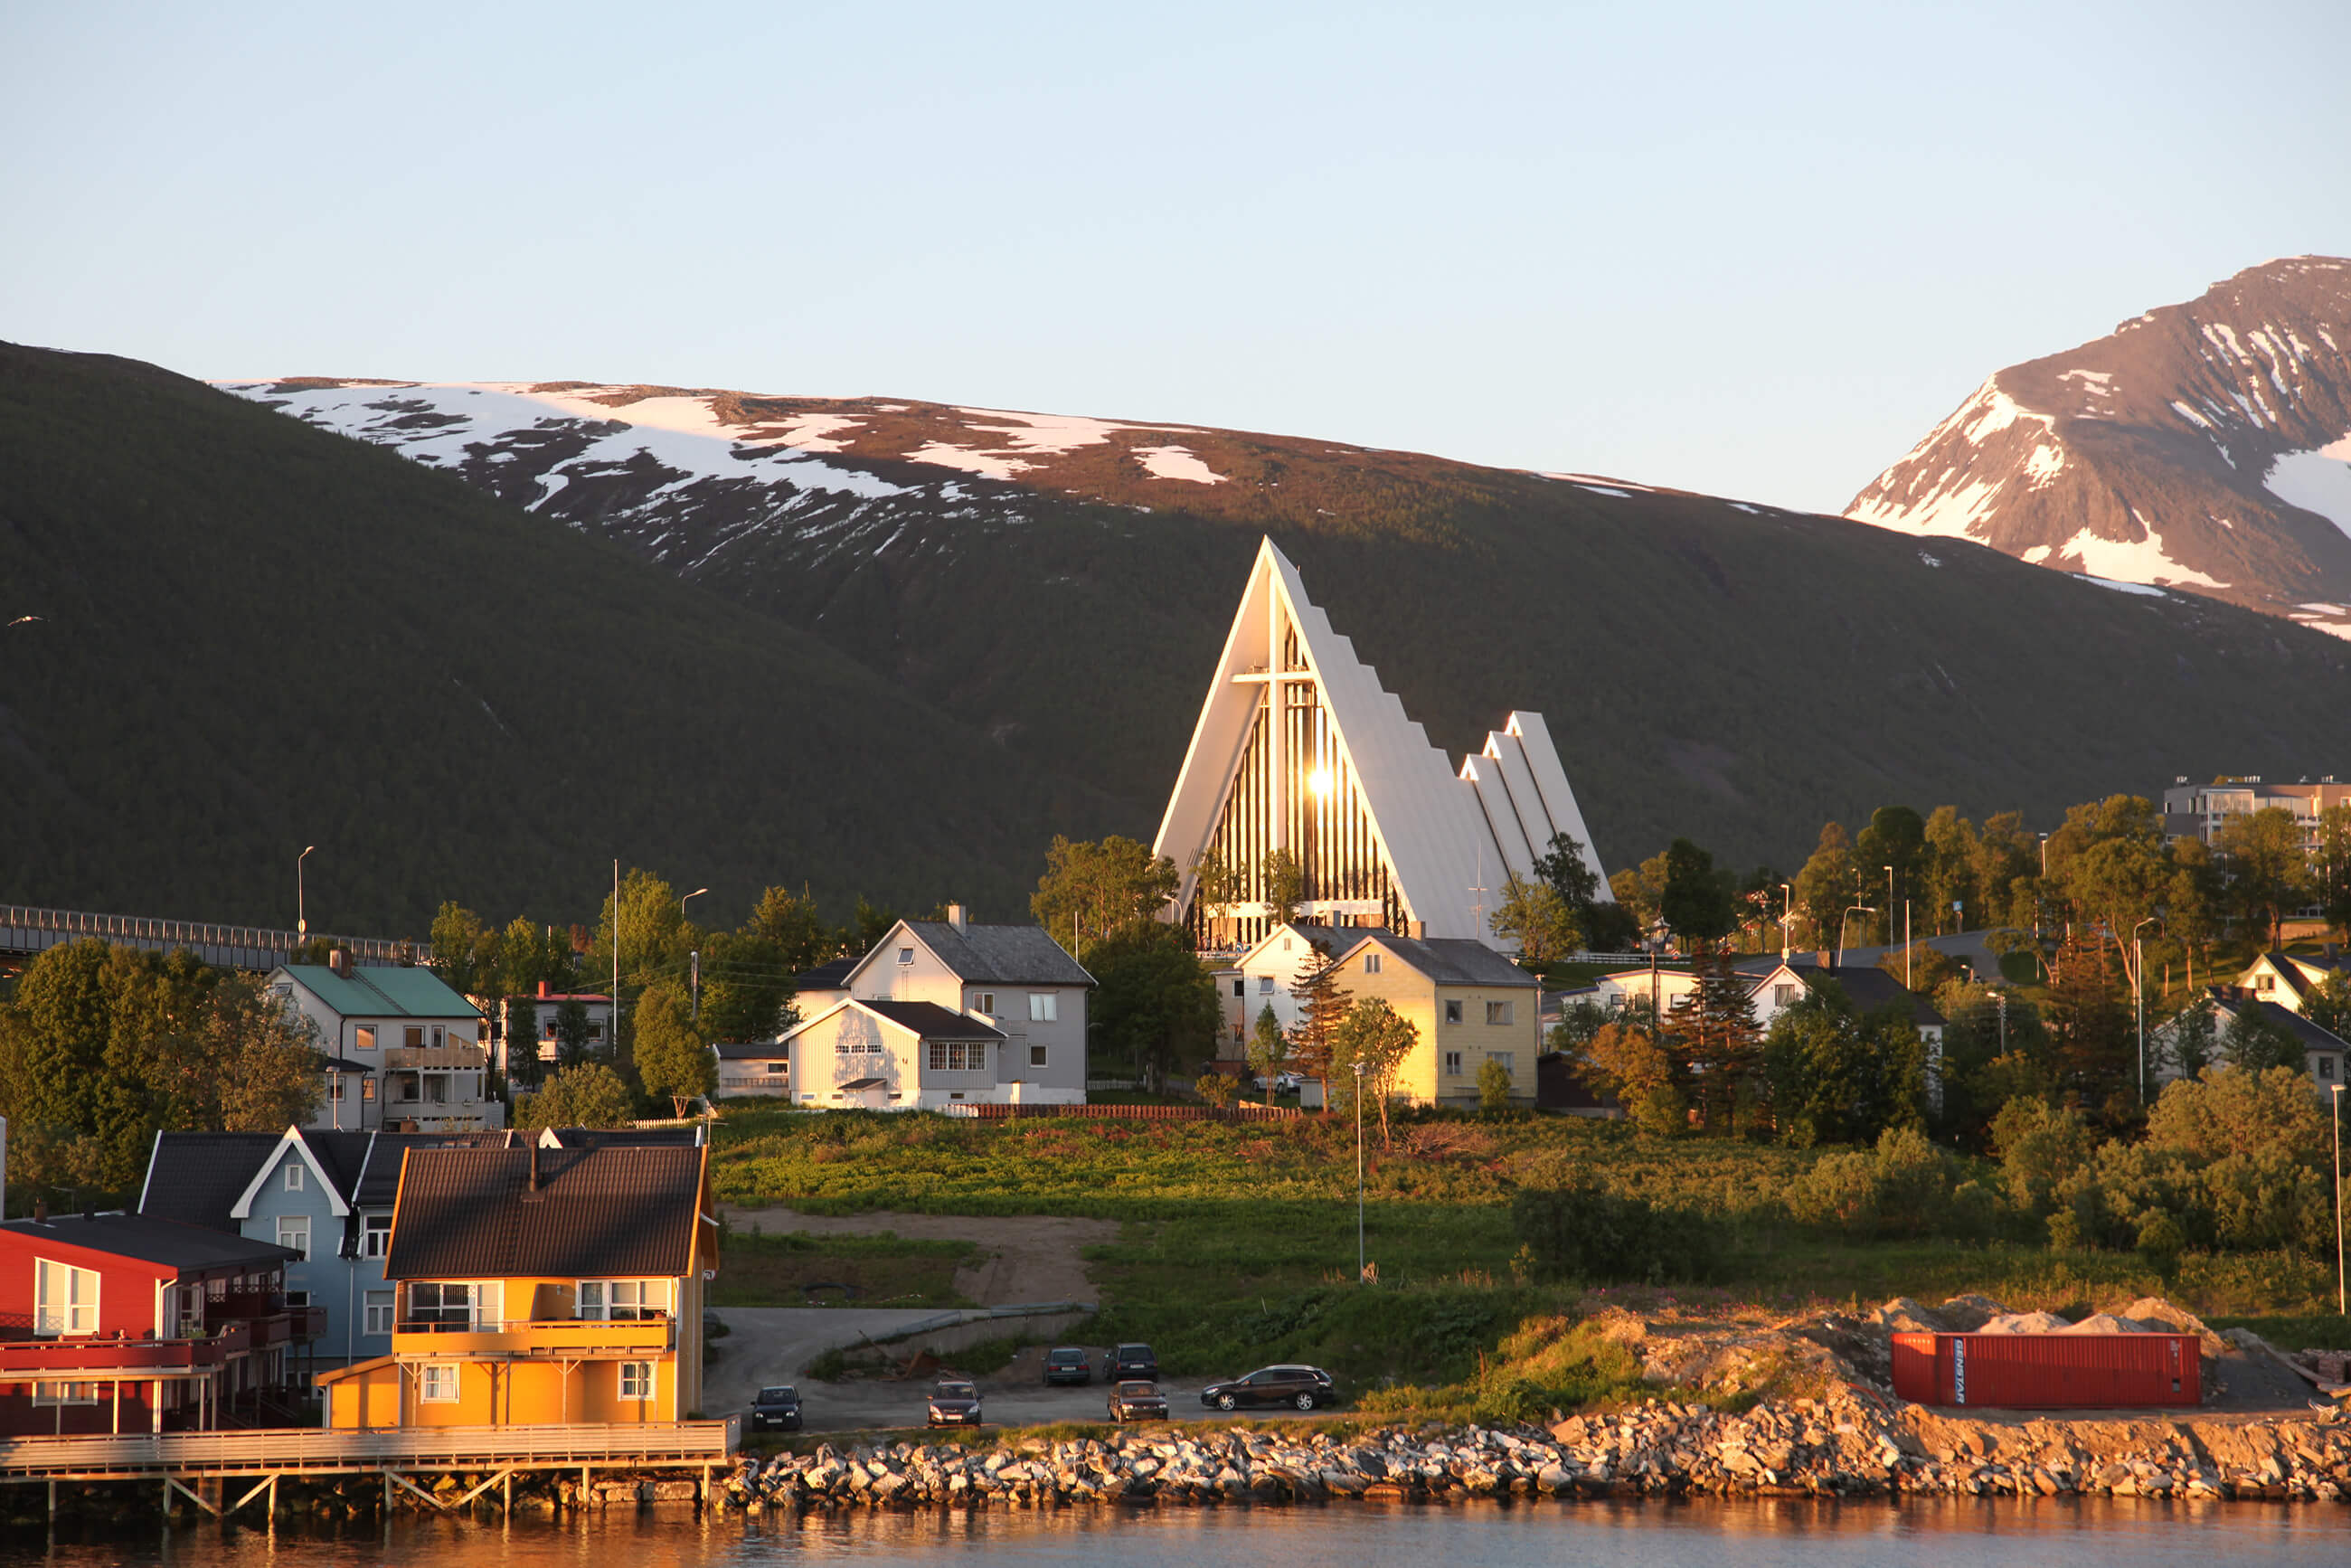 https://bubo.sk/uploads/galleries/5043/arctic-cathedral-tromso-norway-hgr-71710--photo_photo_competition.jpg